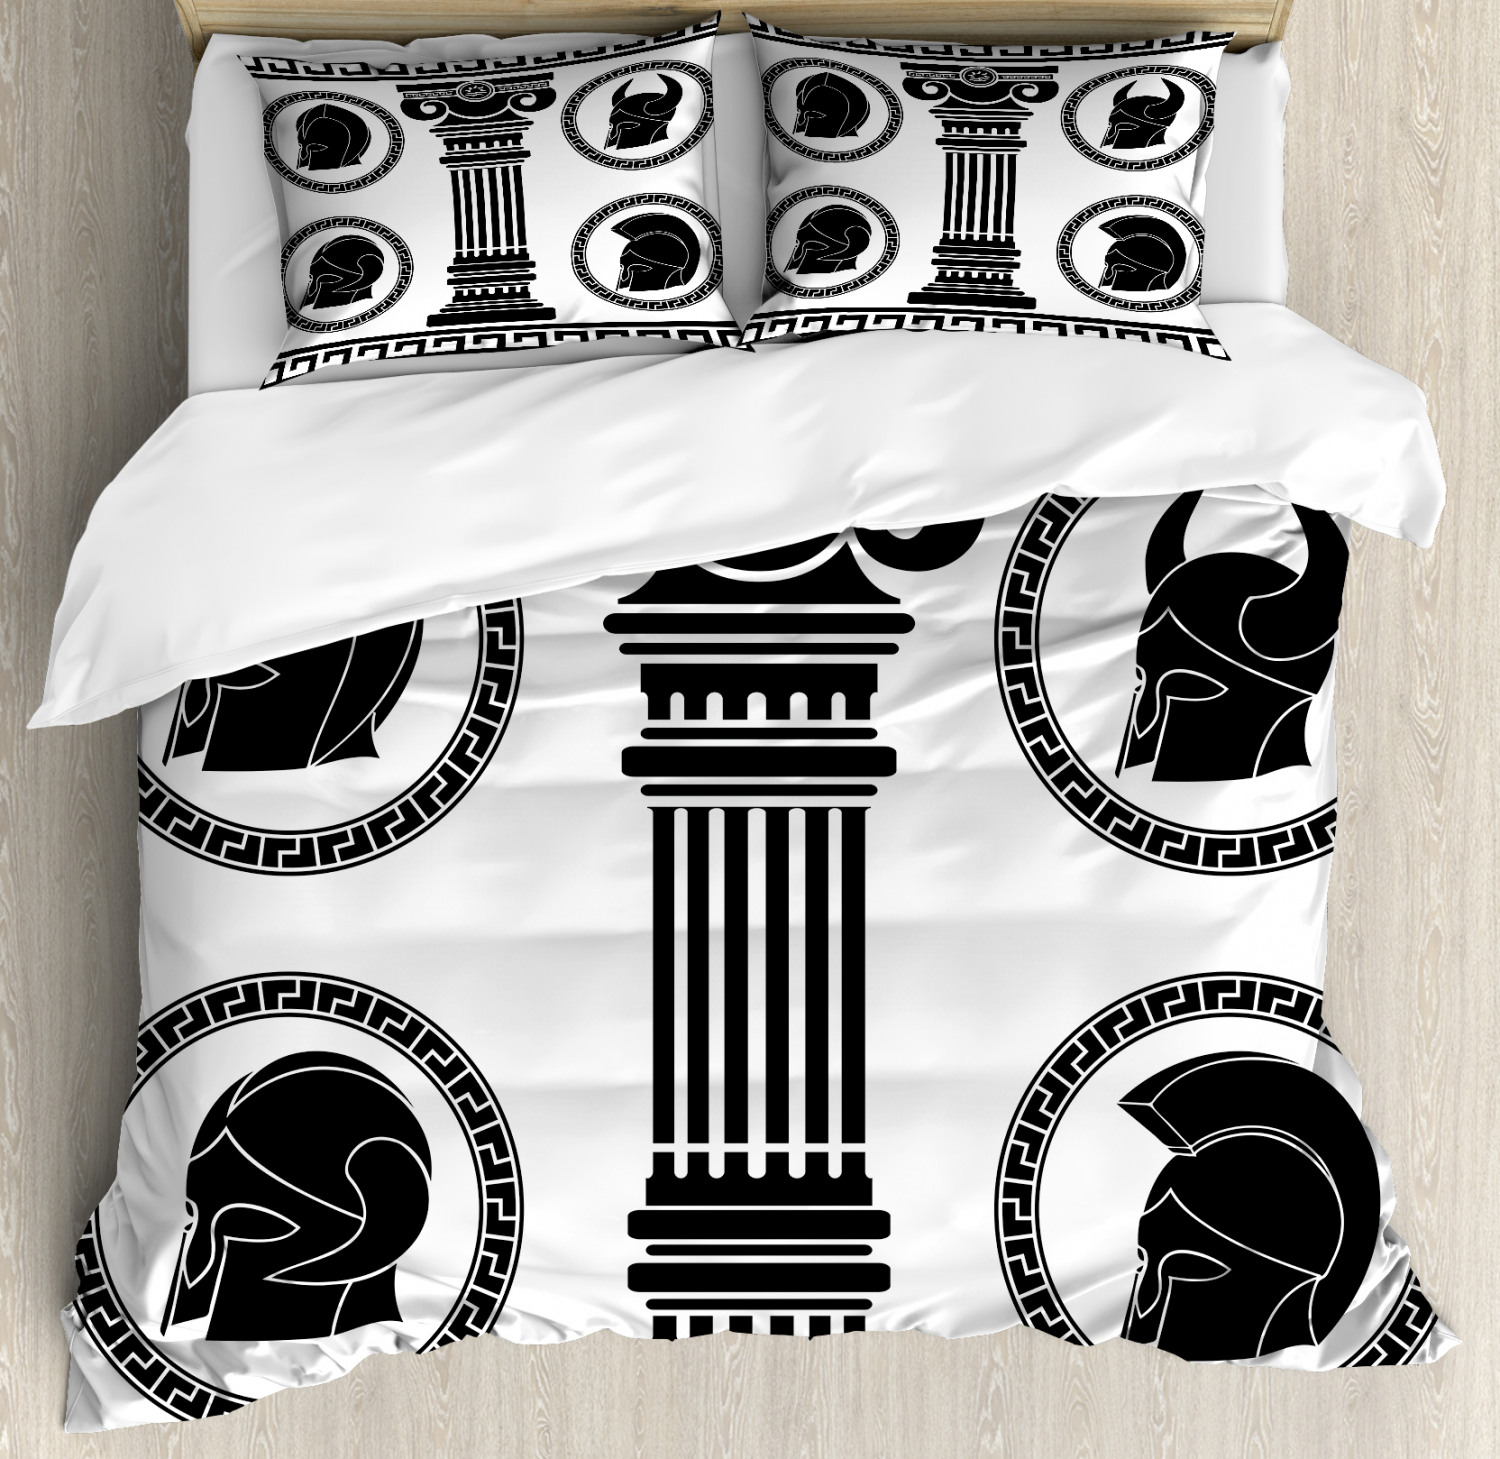 Toga Party Duvet Cover Set with Pillow Shams Antique Spartan Print